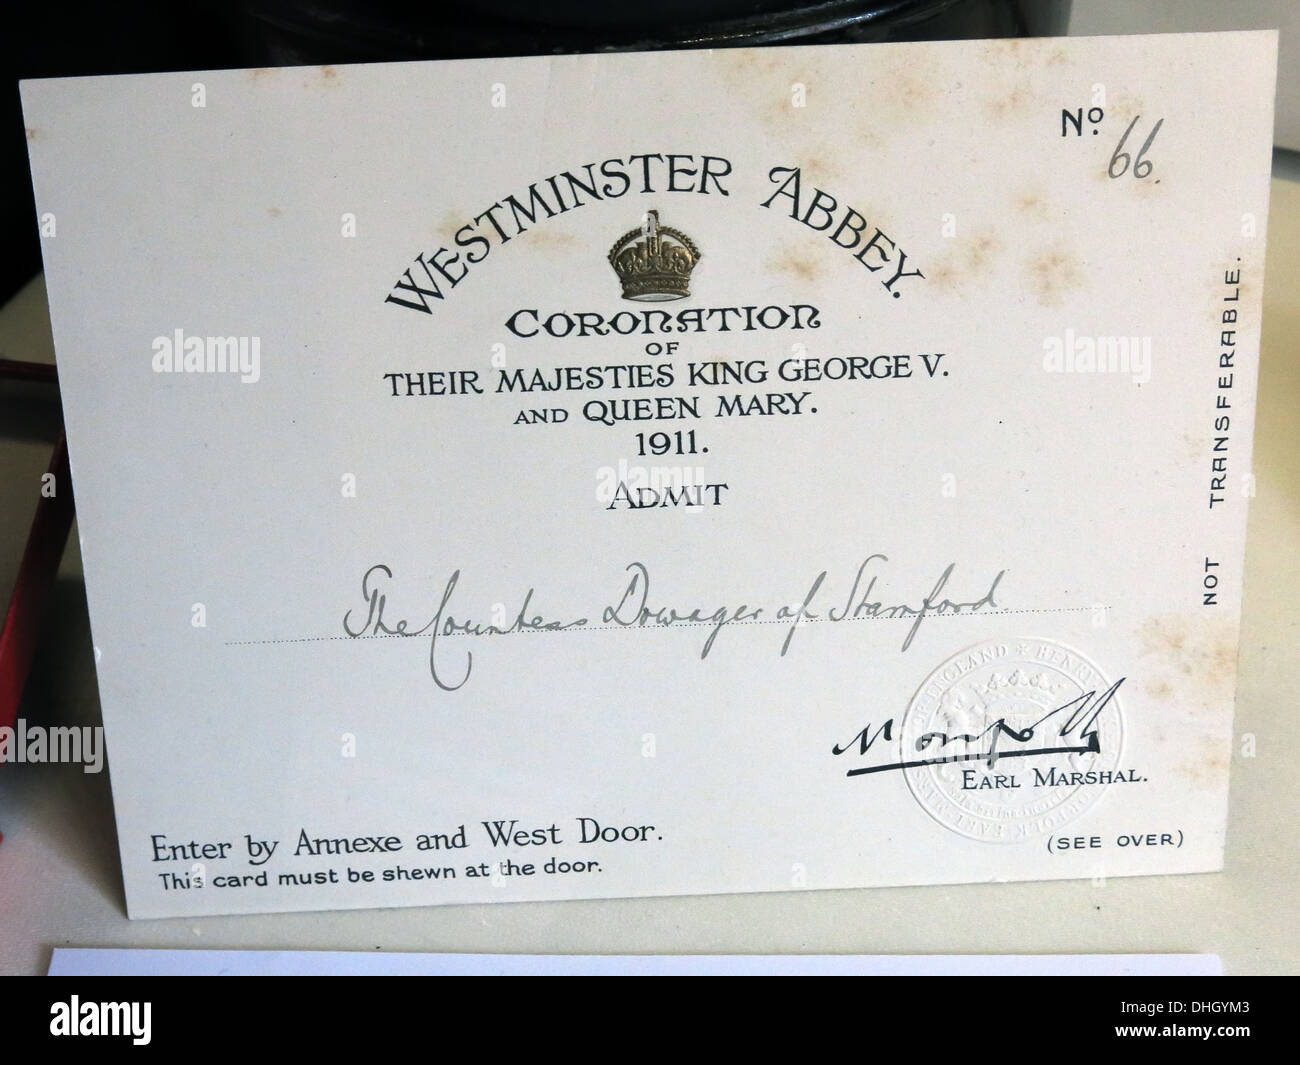 Ticket for 1911 coronation king George V Queen Mary admit countess dowager of Stamford from Dunham Massey NT Altrincham Cheshire - Stock Image